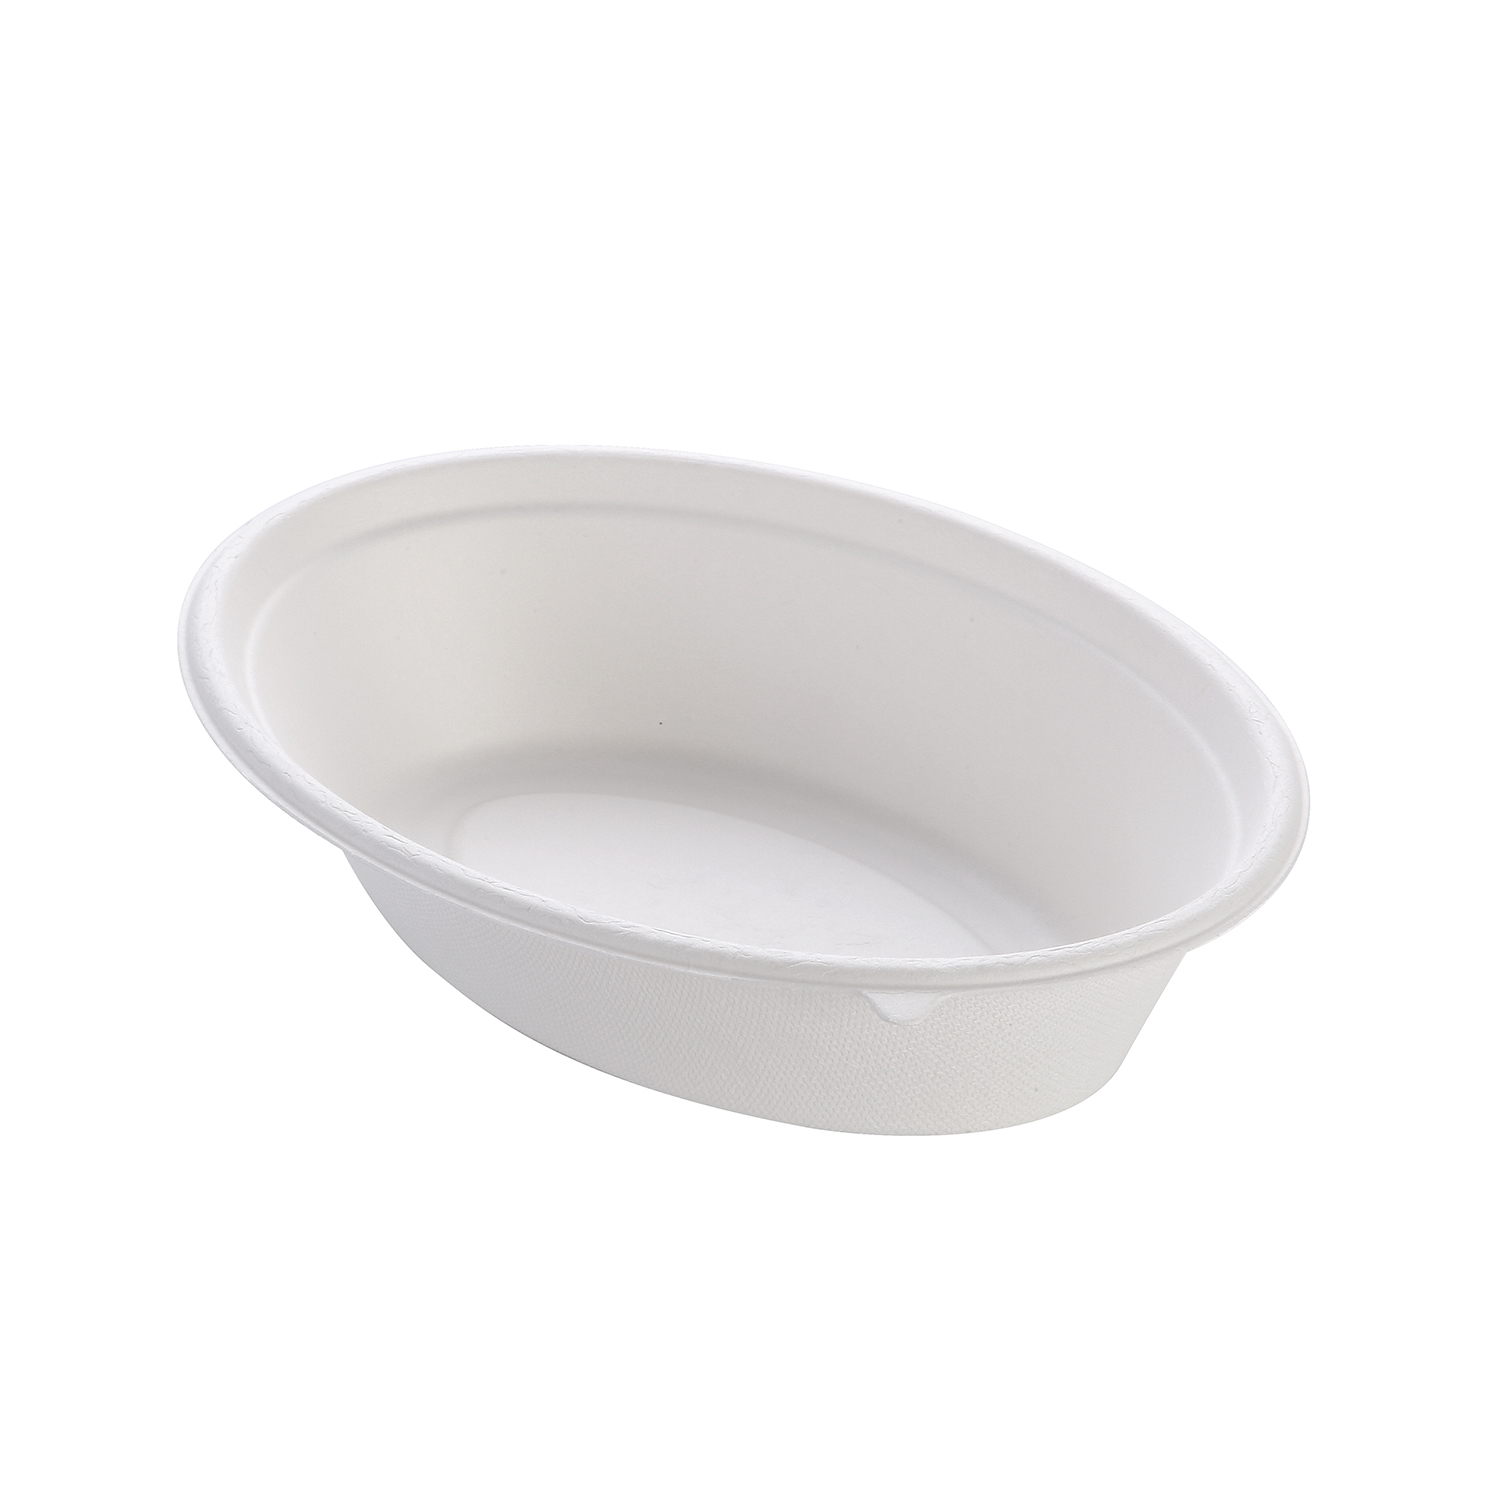 32 OZ 100% Degradable Bagasse Oval Bowl